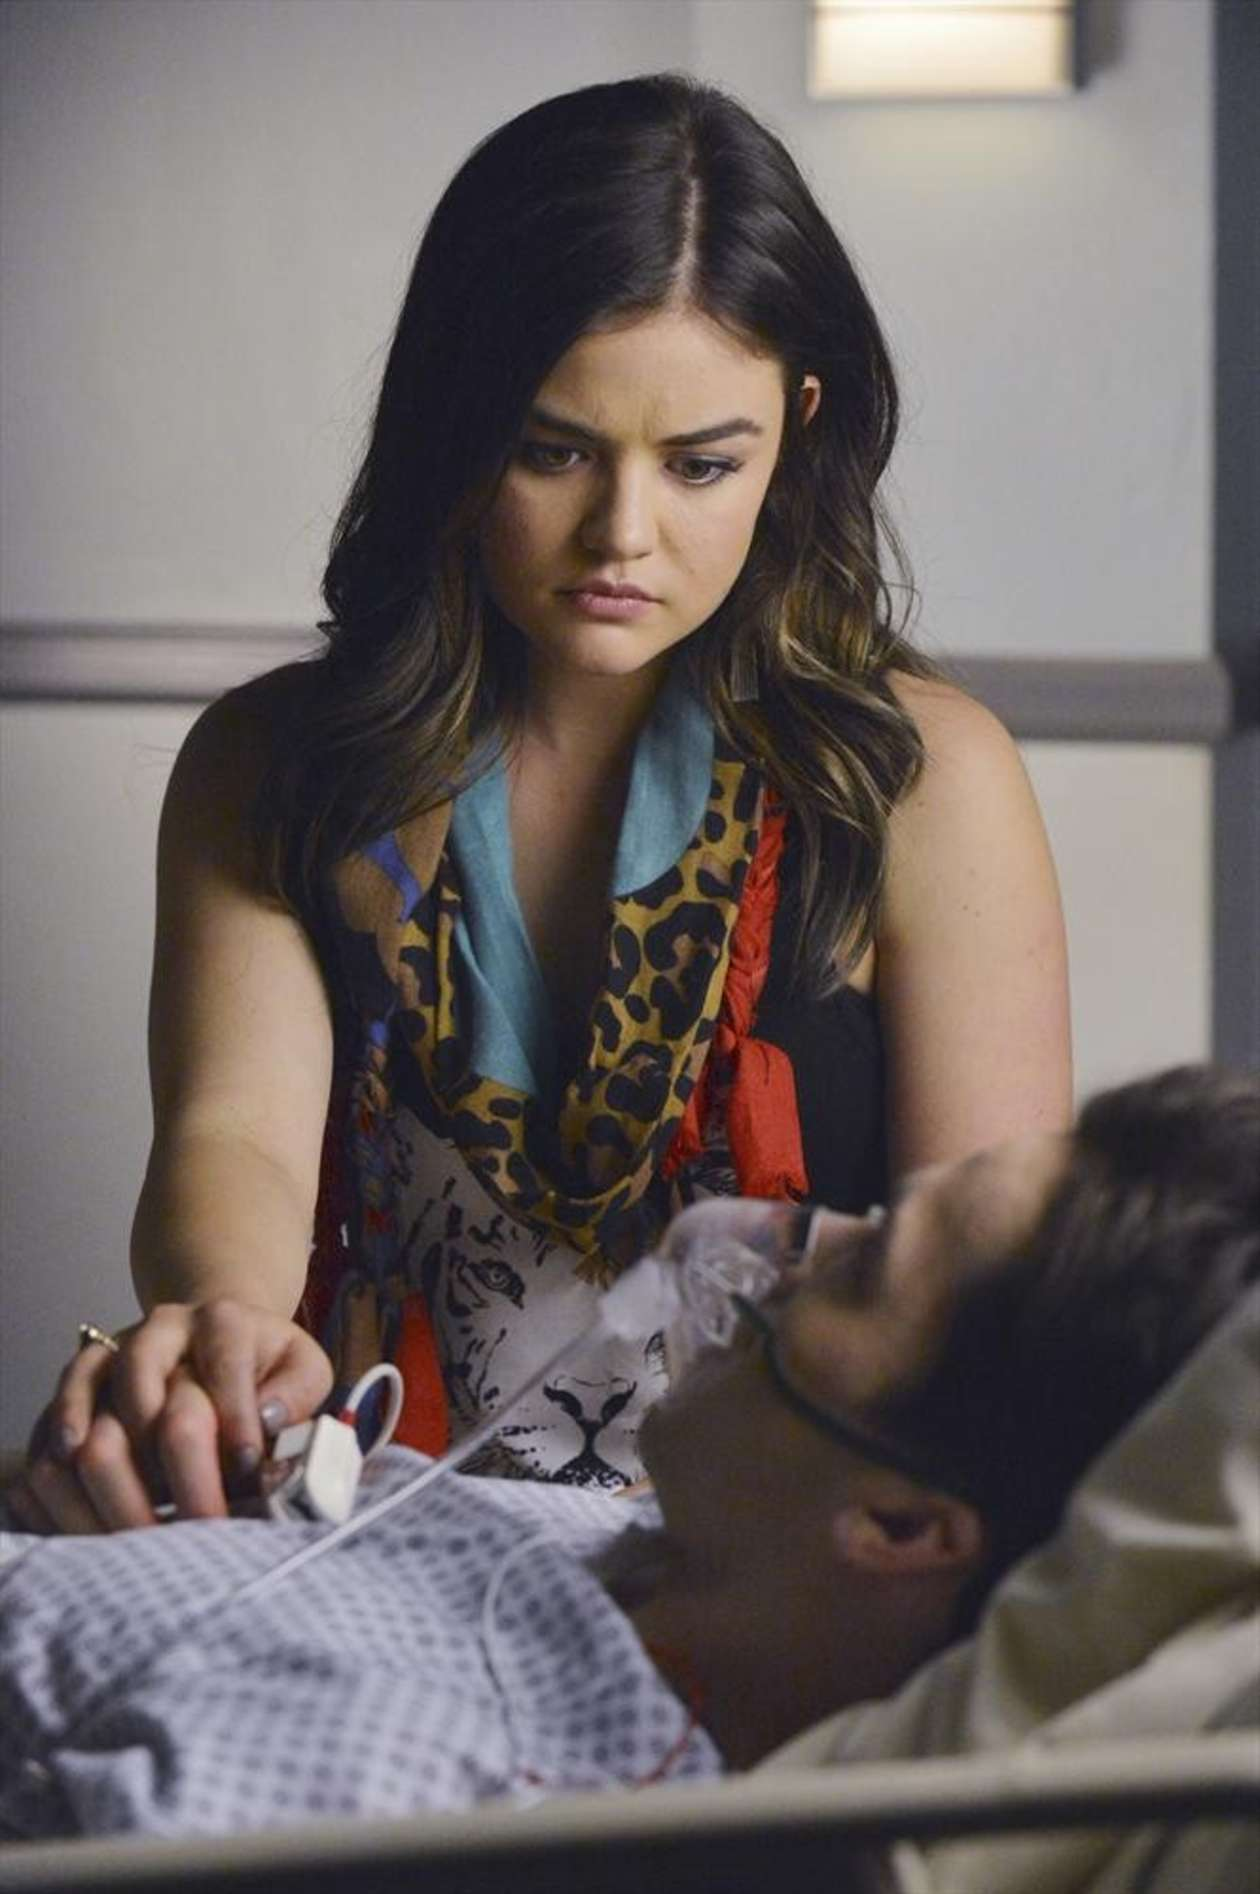 Pretty Little Liars Crazy Fan Theory: Aria Was Once a Patient at Radley